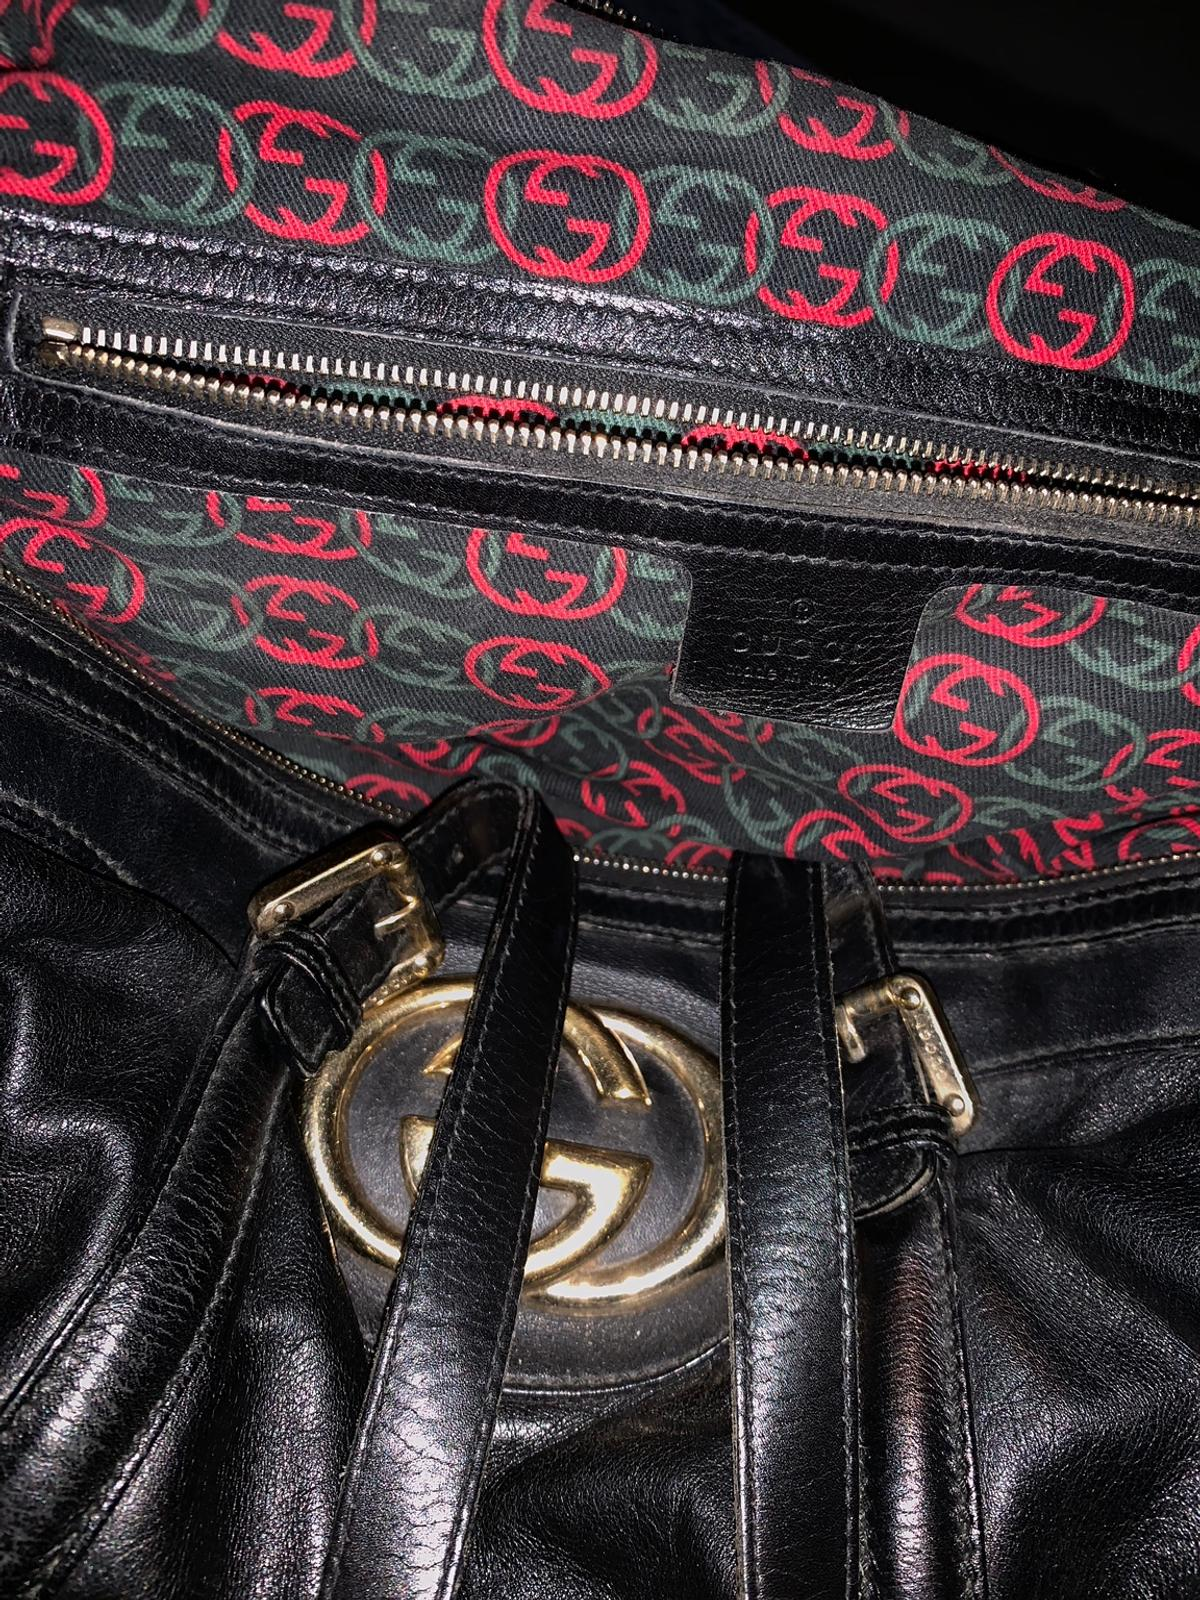 100% genuine Gucci bag, was lucky to receive this as a gift from a family friend 5 years ago, I've never used as not my style, she's looking for a home, needs a good professional clean I do not have a dust bag for it or papers/card but you are welcome to get a second opinion ✨👜 would like £350 but open to offers